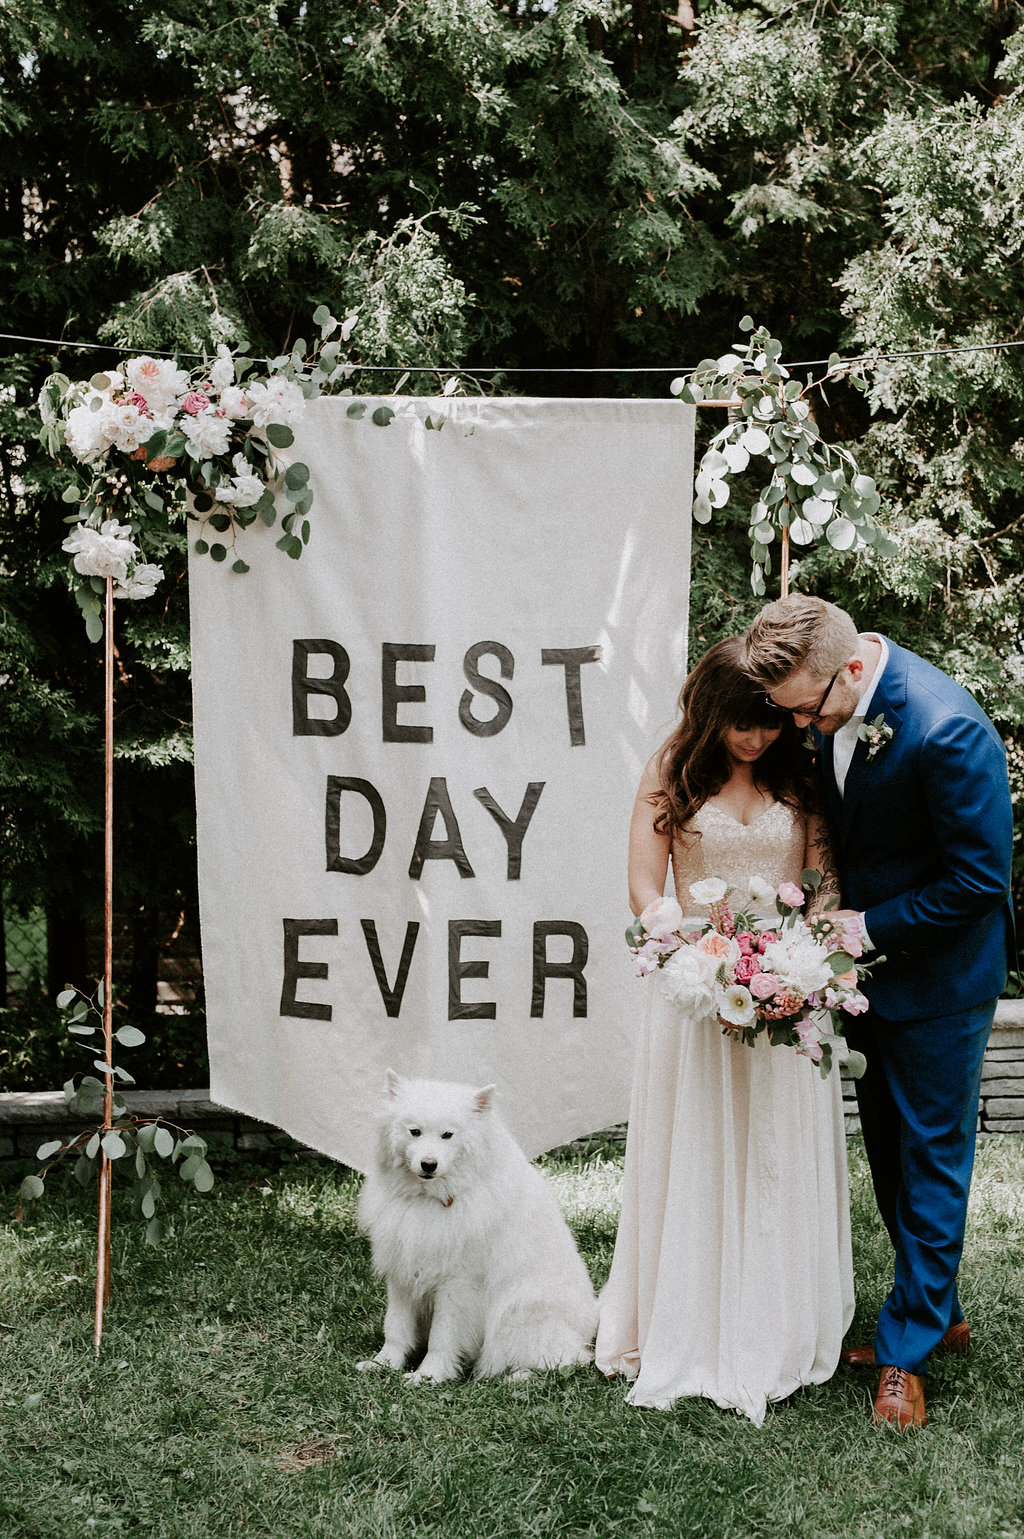 Backyard Wedding at Home with a Banner Backdrop - http://ruffledblog.com/backyard-wedding-at-home-with-a-banner-backdrop